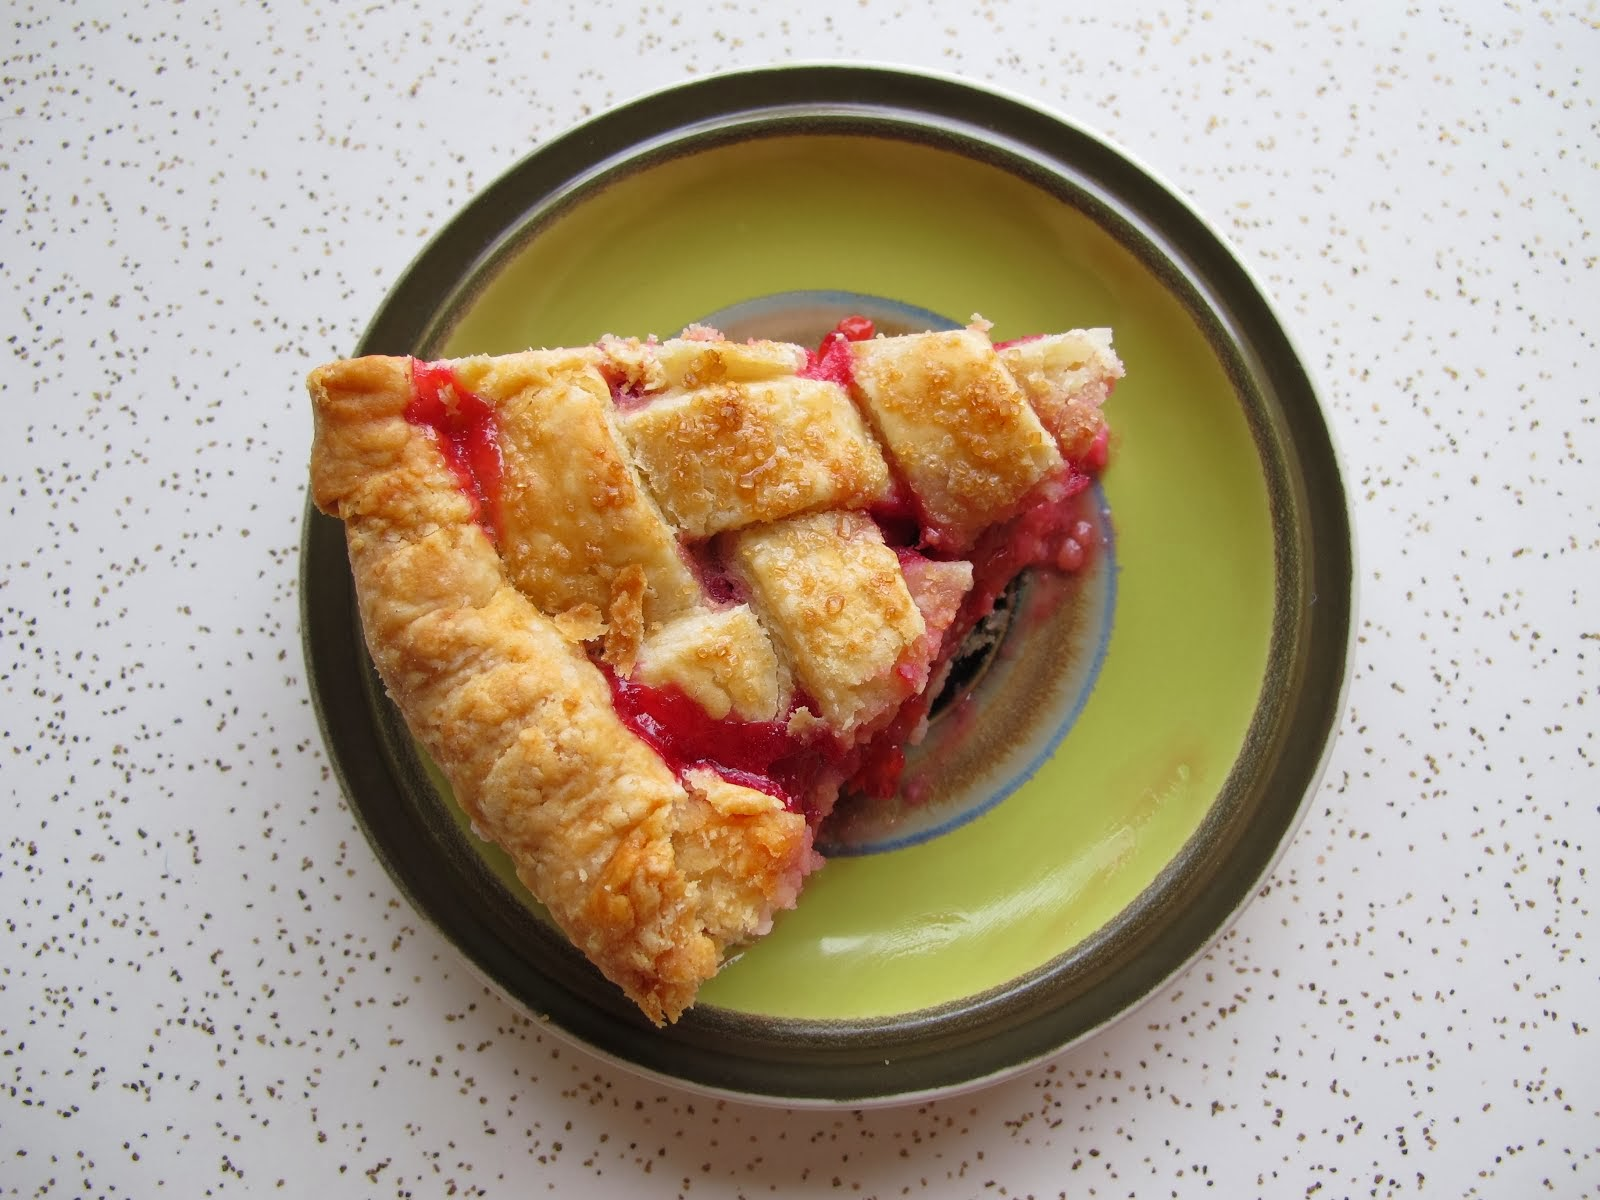 Pie Slice by Kate Lebo